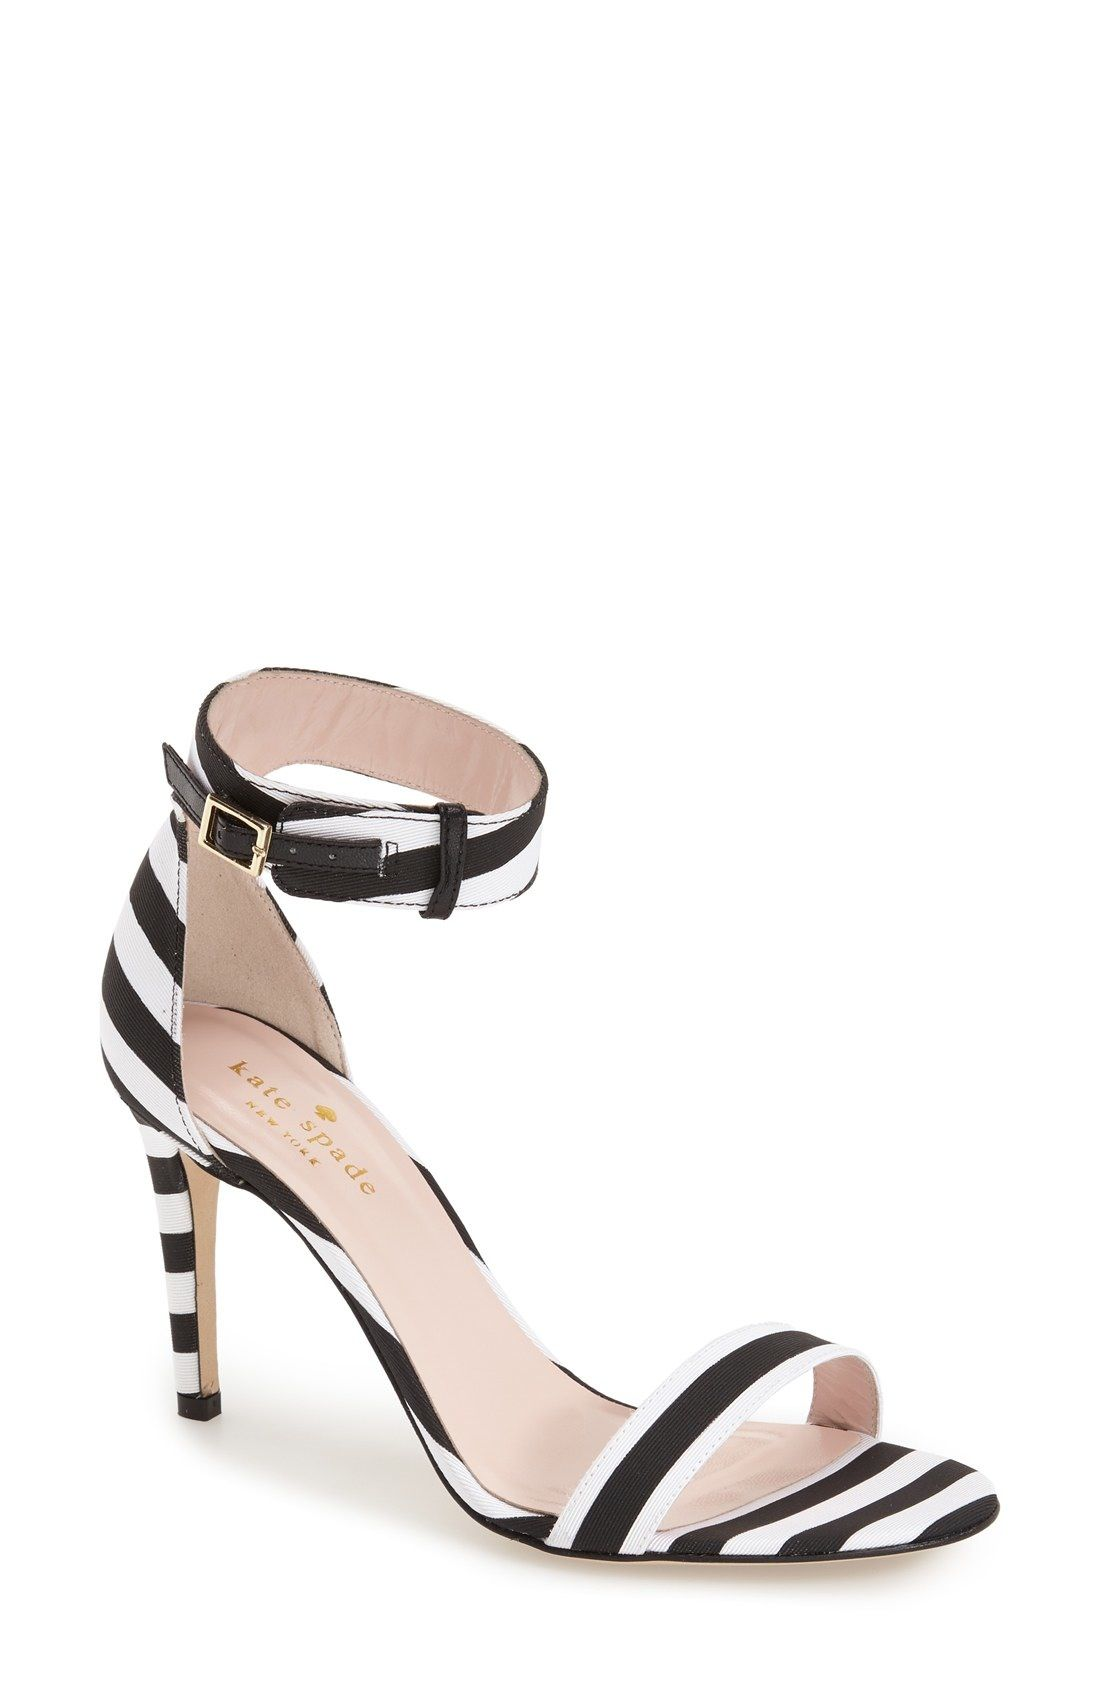 335cd0b9b911 kate spade new york  isa  ankle strap sandal (Women) available at  Nordstrom